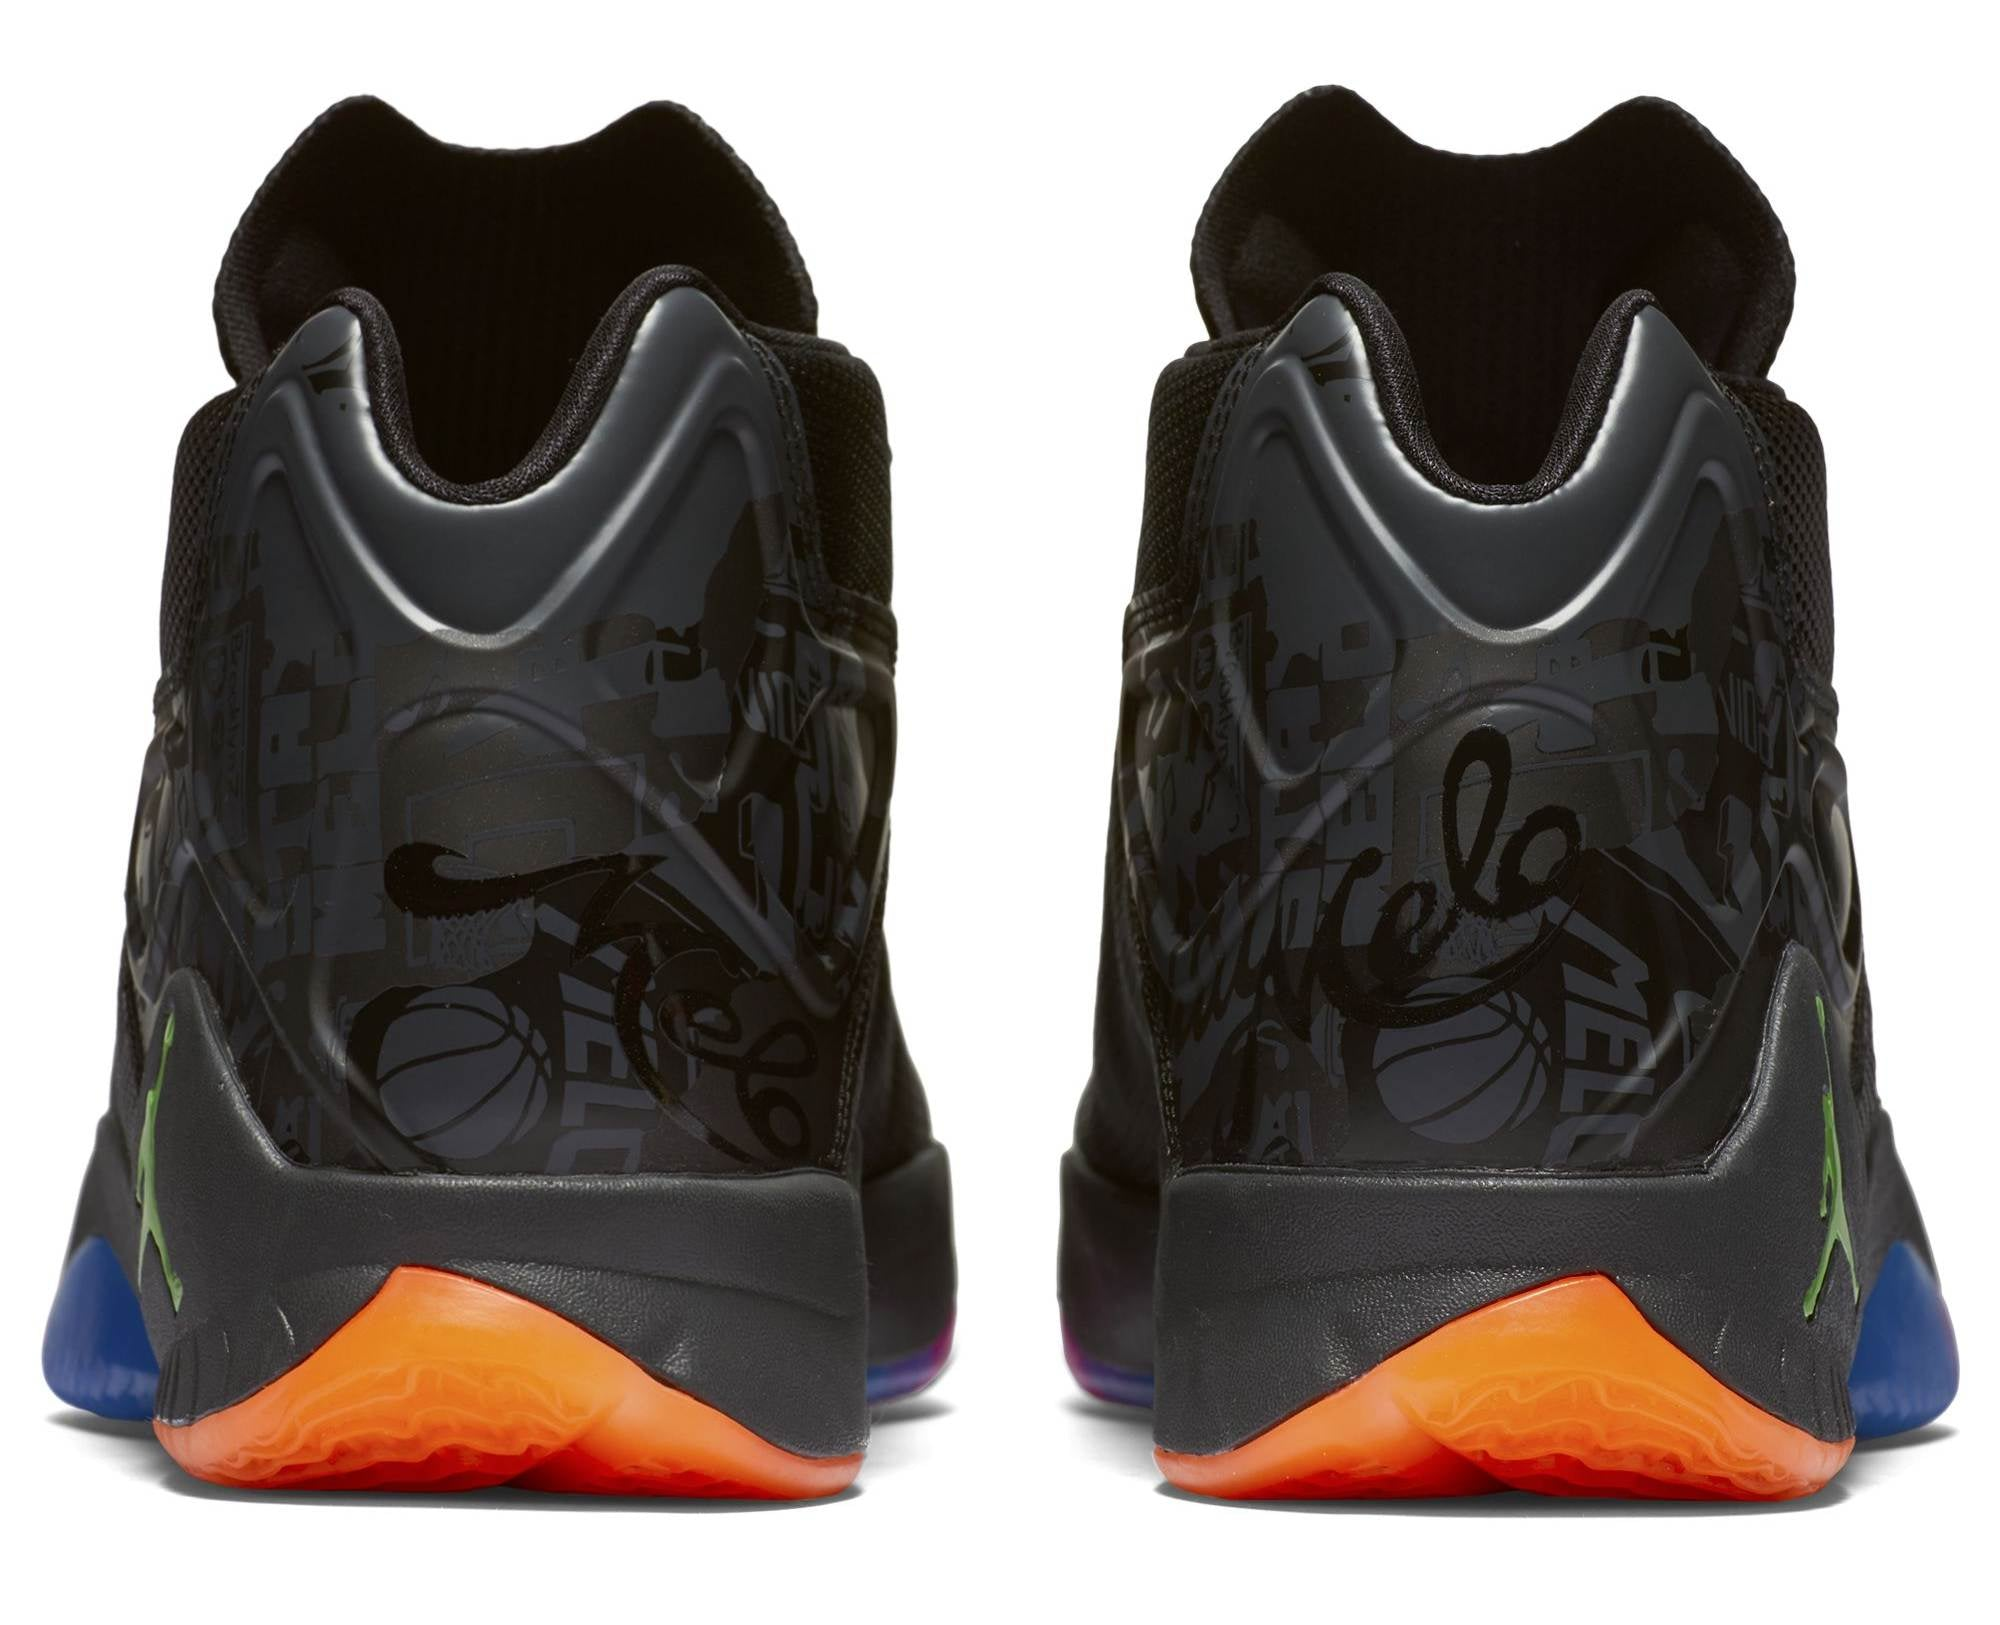 Nike Jordan Melo M12 Basketball Boot/Shoe - Black/Green Ghost/Pink/Orange/Blue